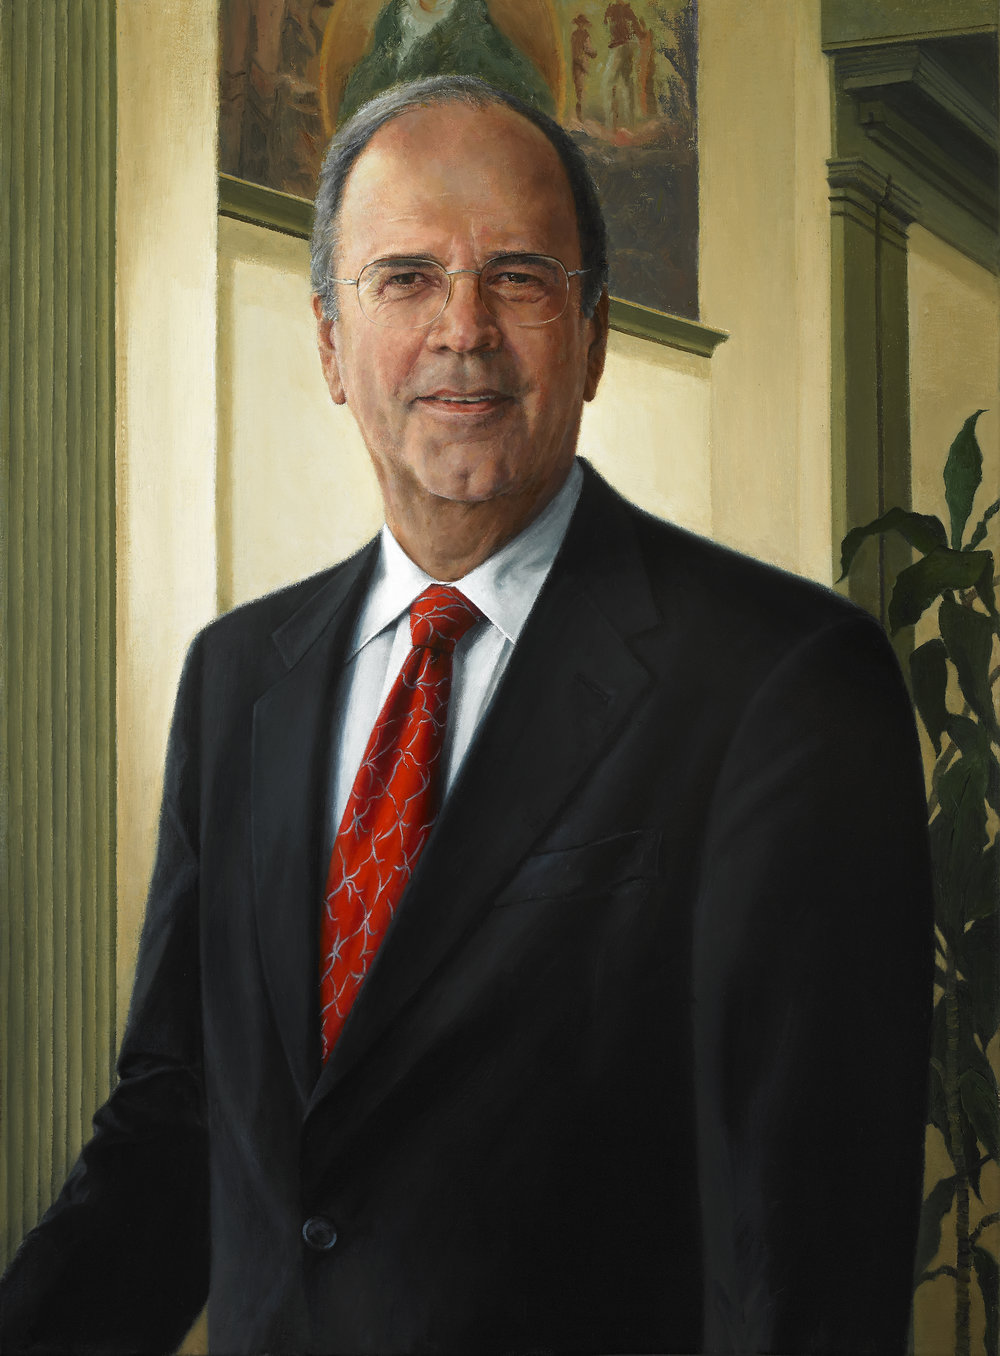 "R. Scott Smith, Jr., Chairman and Chief Executive Officer, Fulton Financial Corporation , Oil on canvas, 2012, 30"" x 22""  Private Collection, Fulton Financial Corporation, Lancaster, PA"